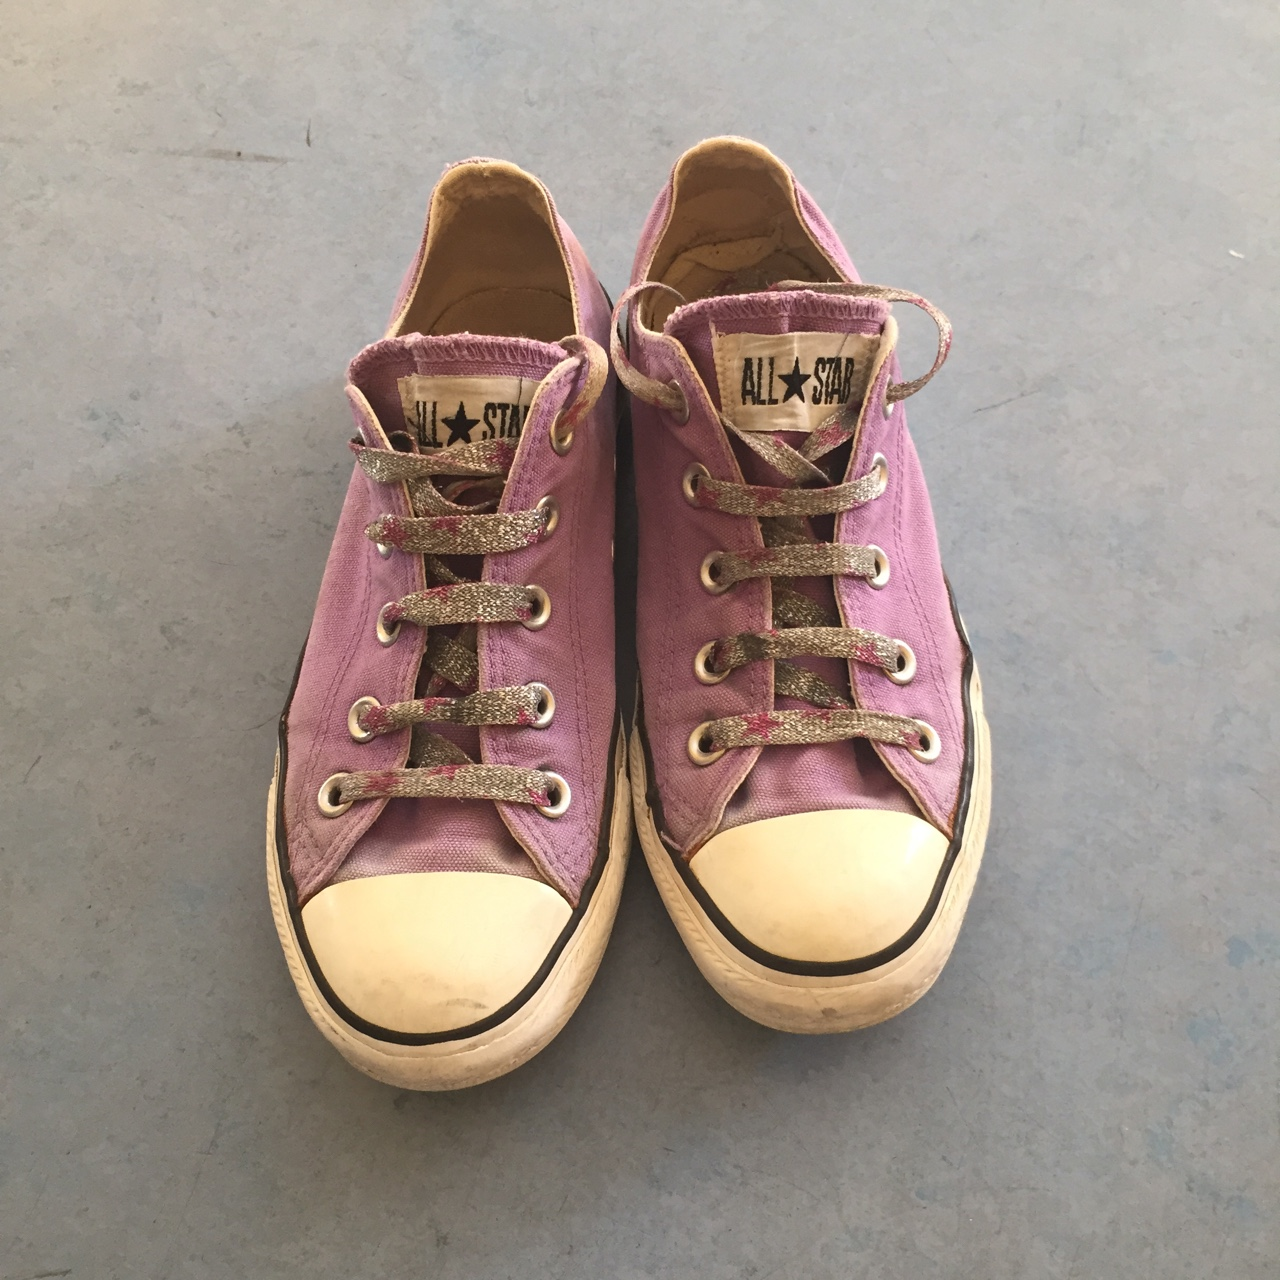 2all star converse lilla